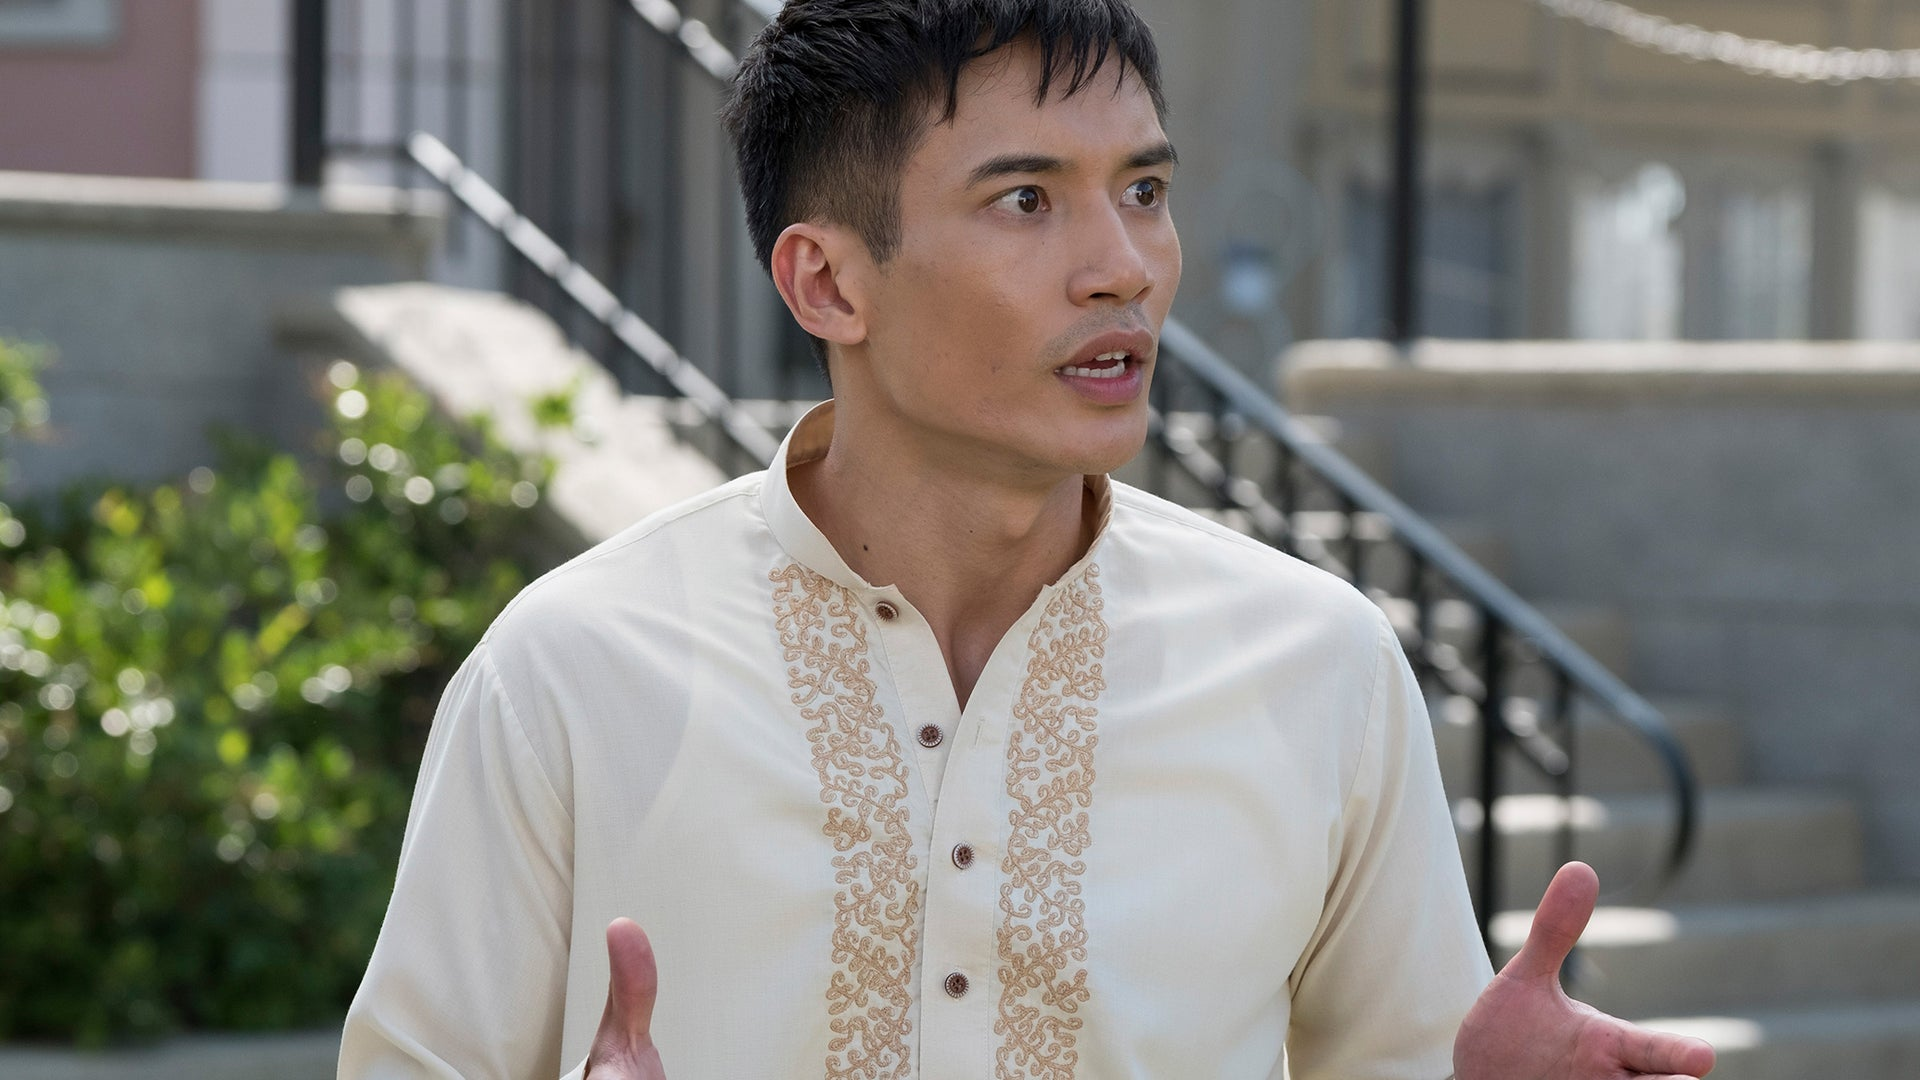 Manny Jacinto; The Good Place